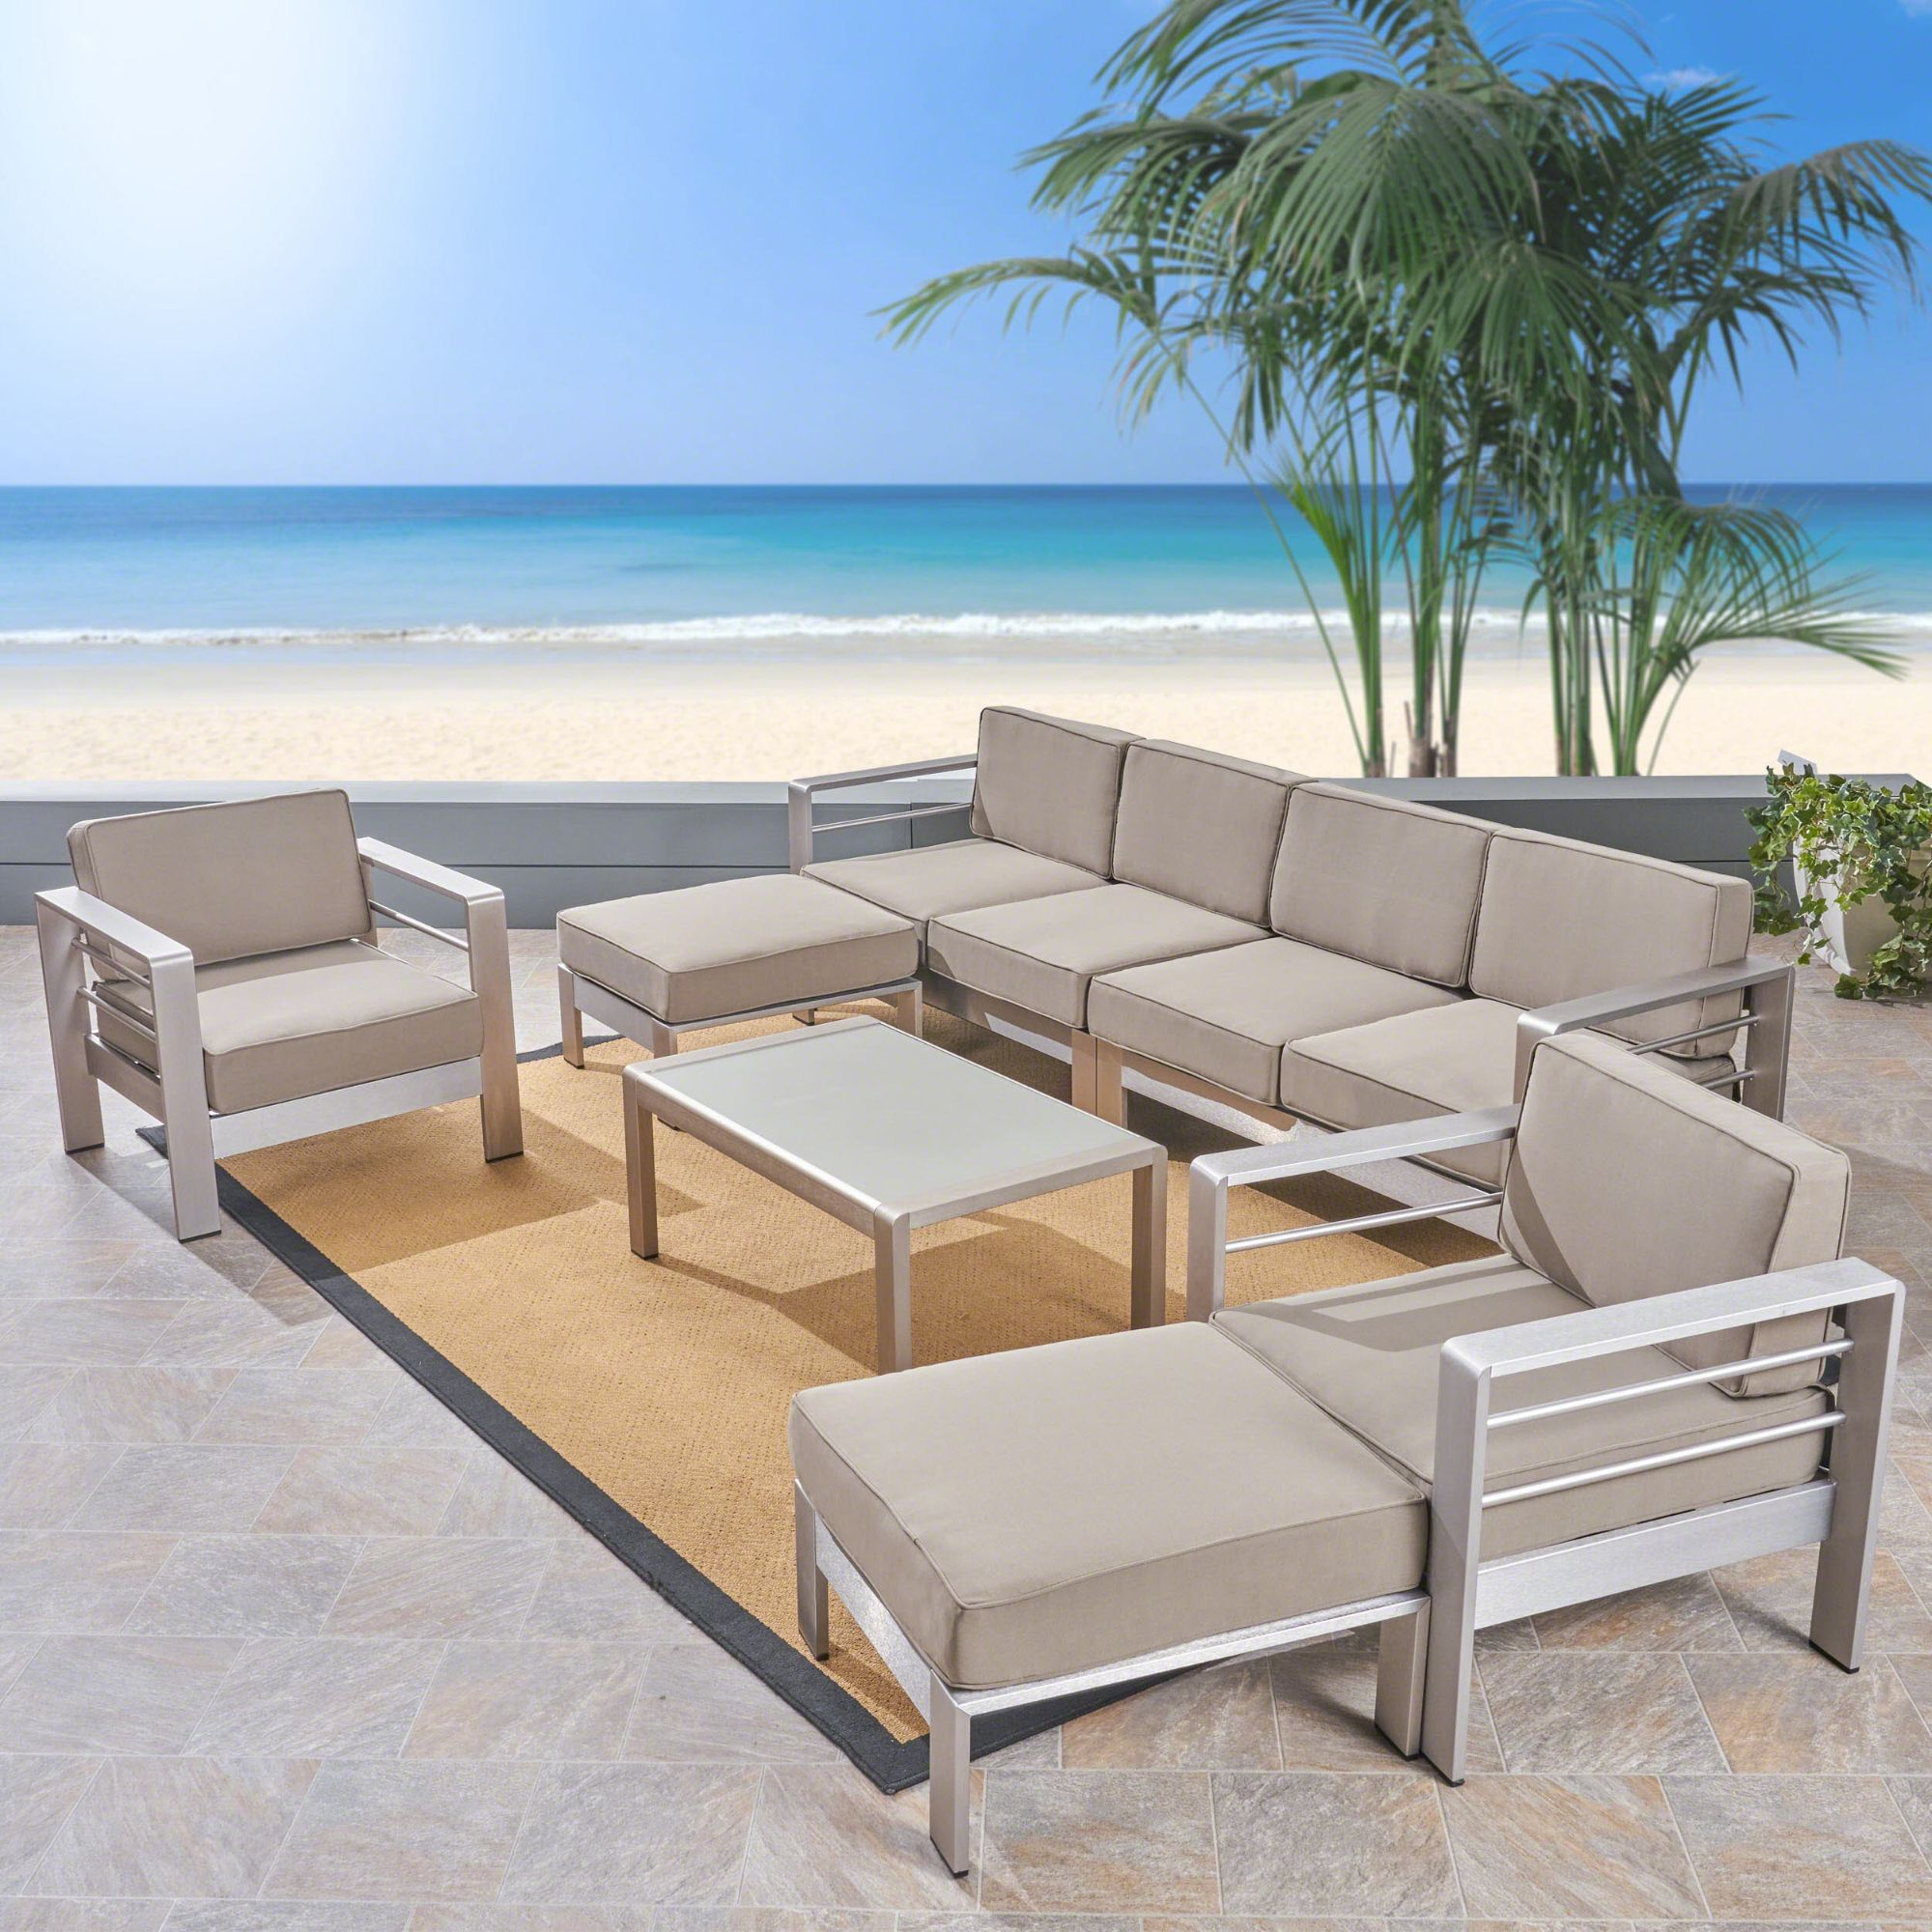 7 piece silver contemporary outdoor furniture patio sectional sofa set brown cushions